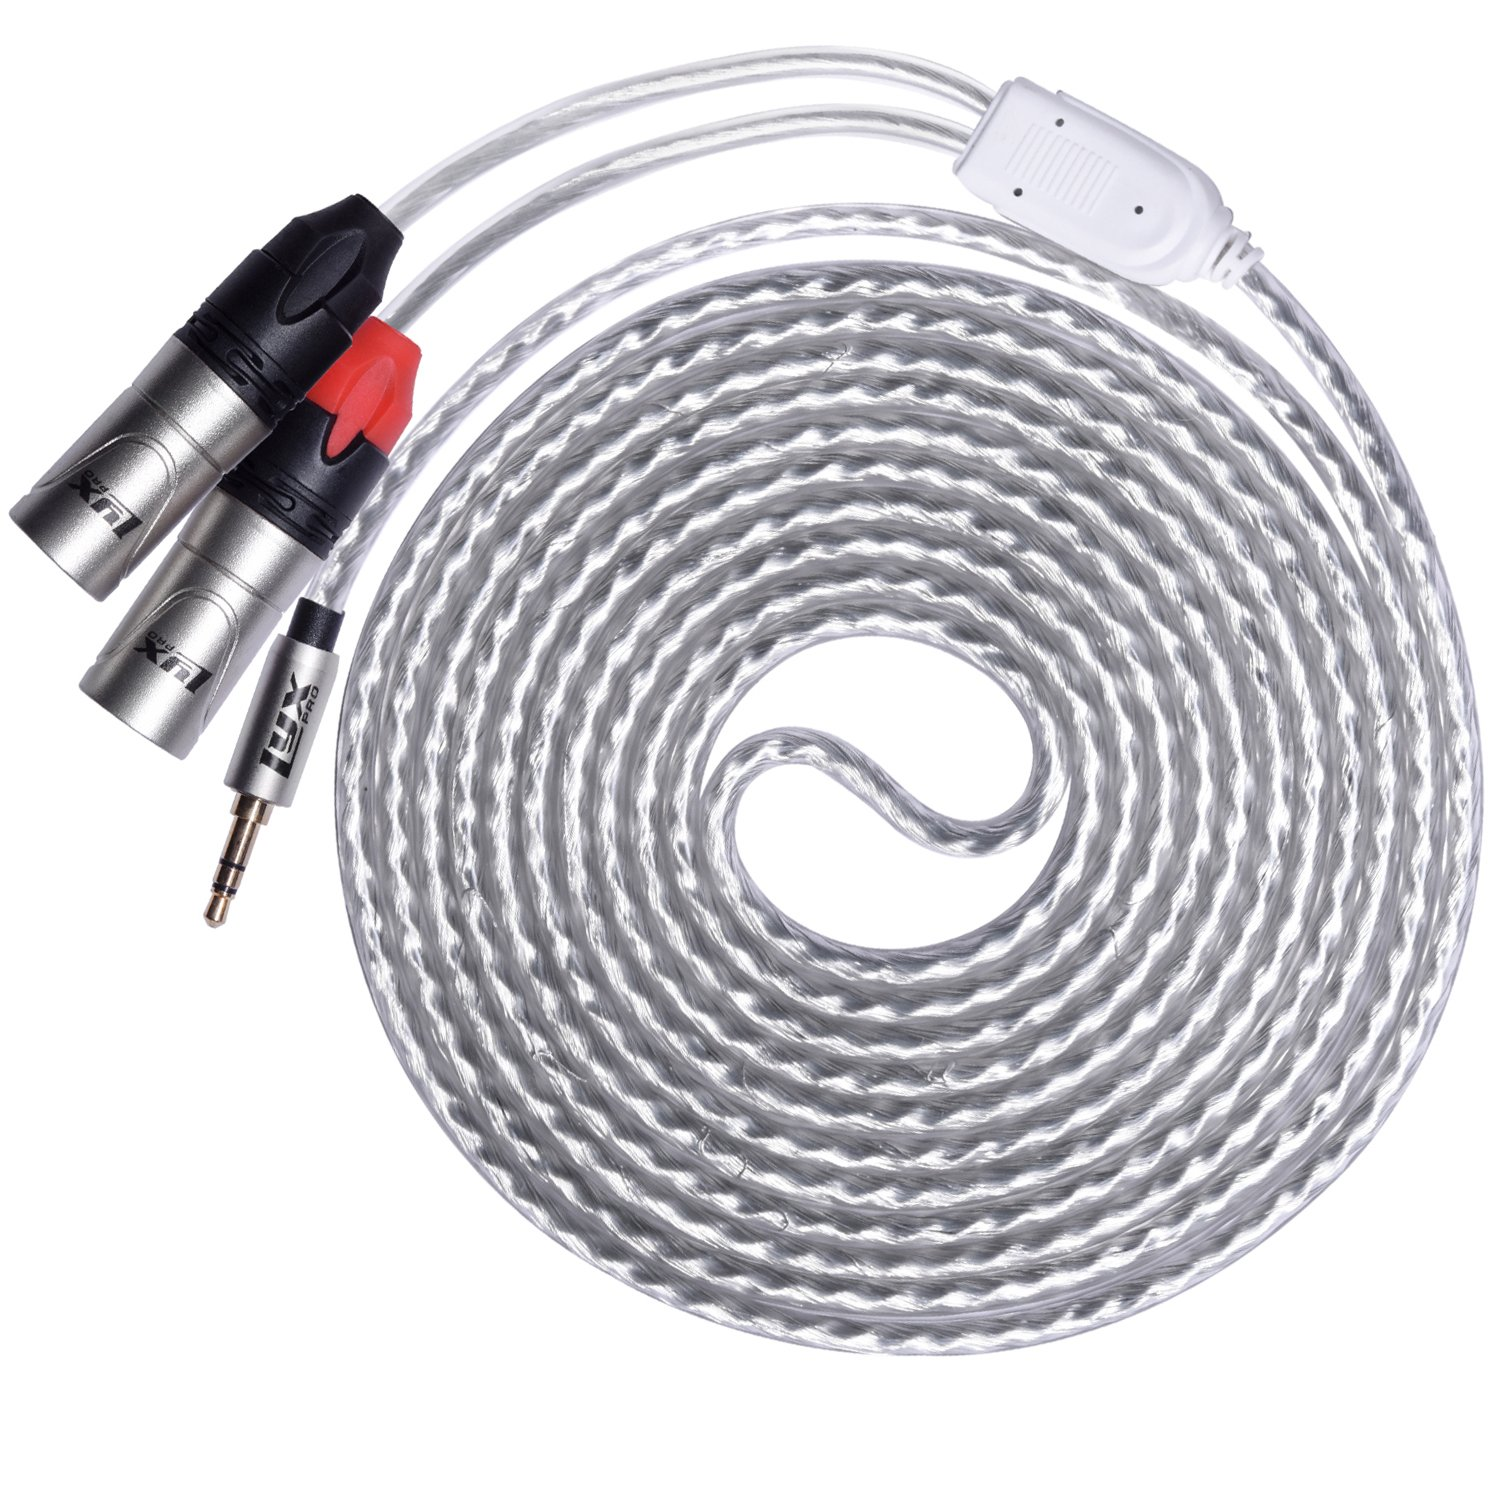 LyxPro Y-Cable 3.5mm TRS Male to Dual XLR Male Stereo Audio Y-Splitter Adapter Cable - 10 Feet